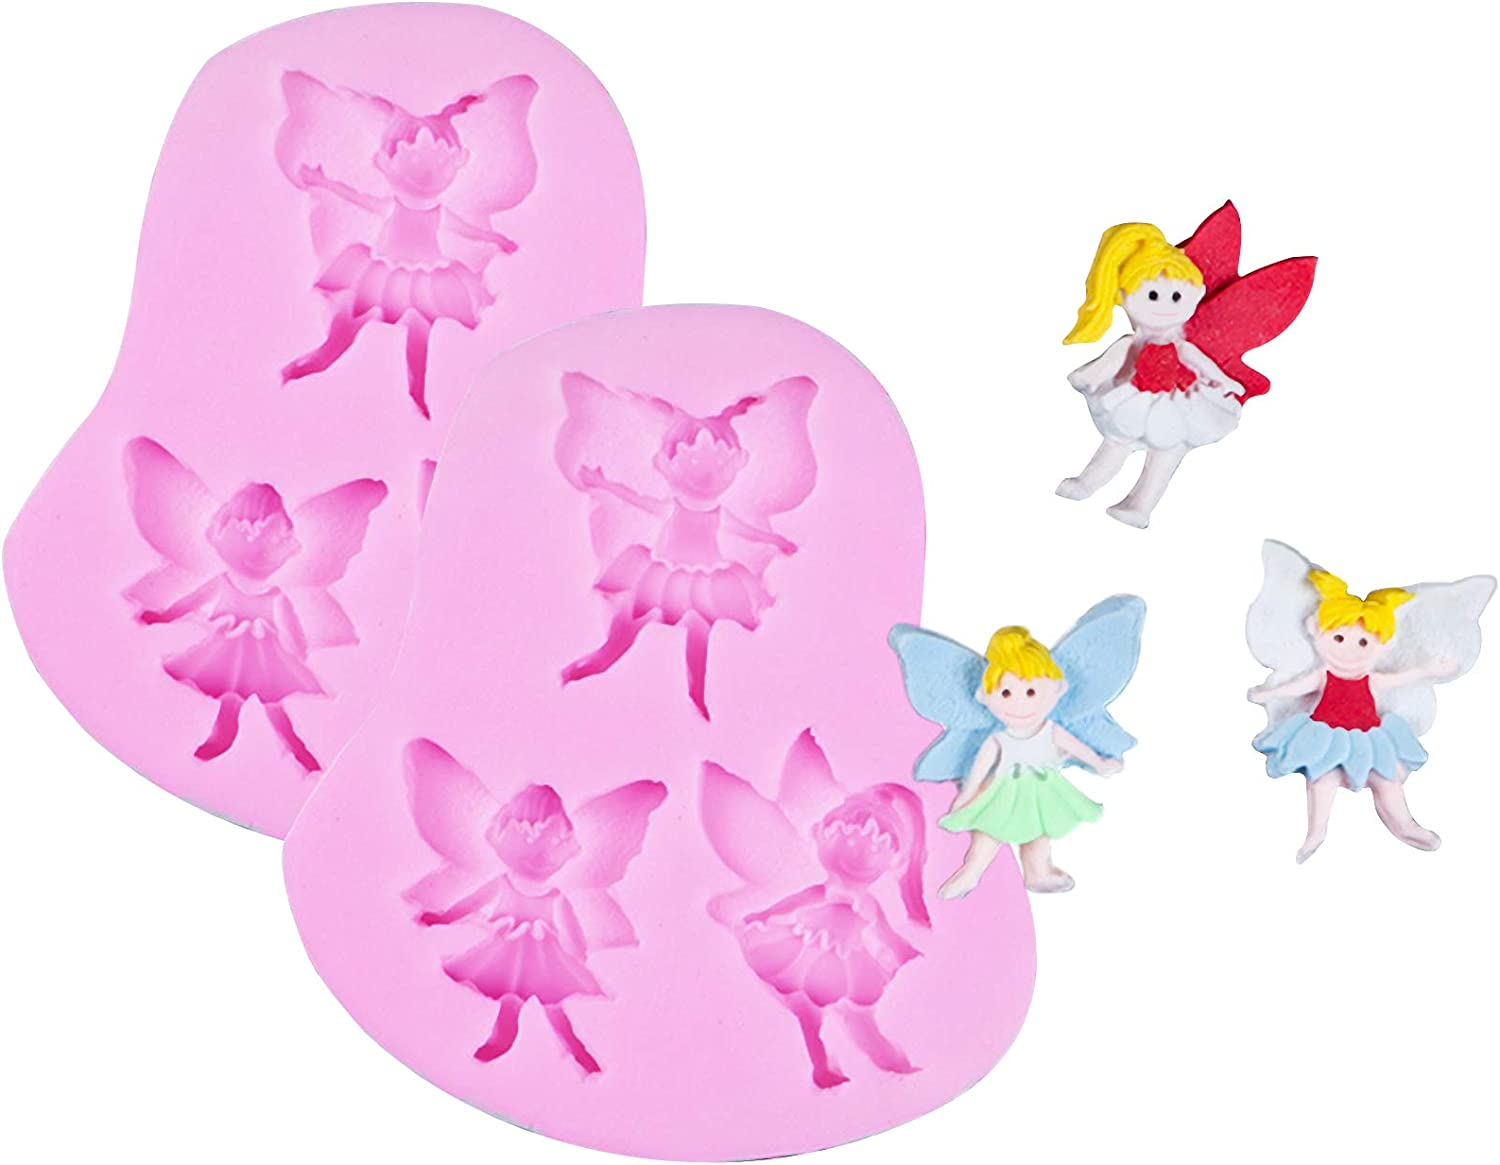 HengKe 2Pcs Small Flower Fairy Angel Girl Silicone Mold Fairy Fondant Baking Handmade Soap Polymer Clay Mold Chocolate Sugarcraft Molds For Jewelry, Polymer Clay, Crafting Projects, Candy Pudding